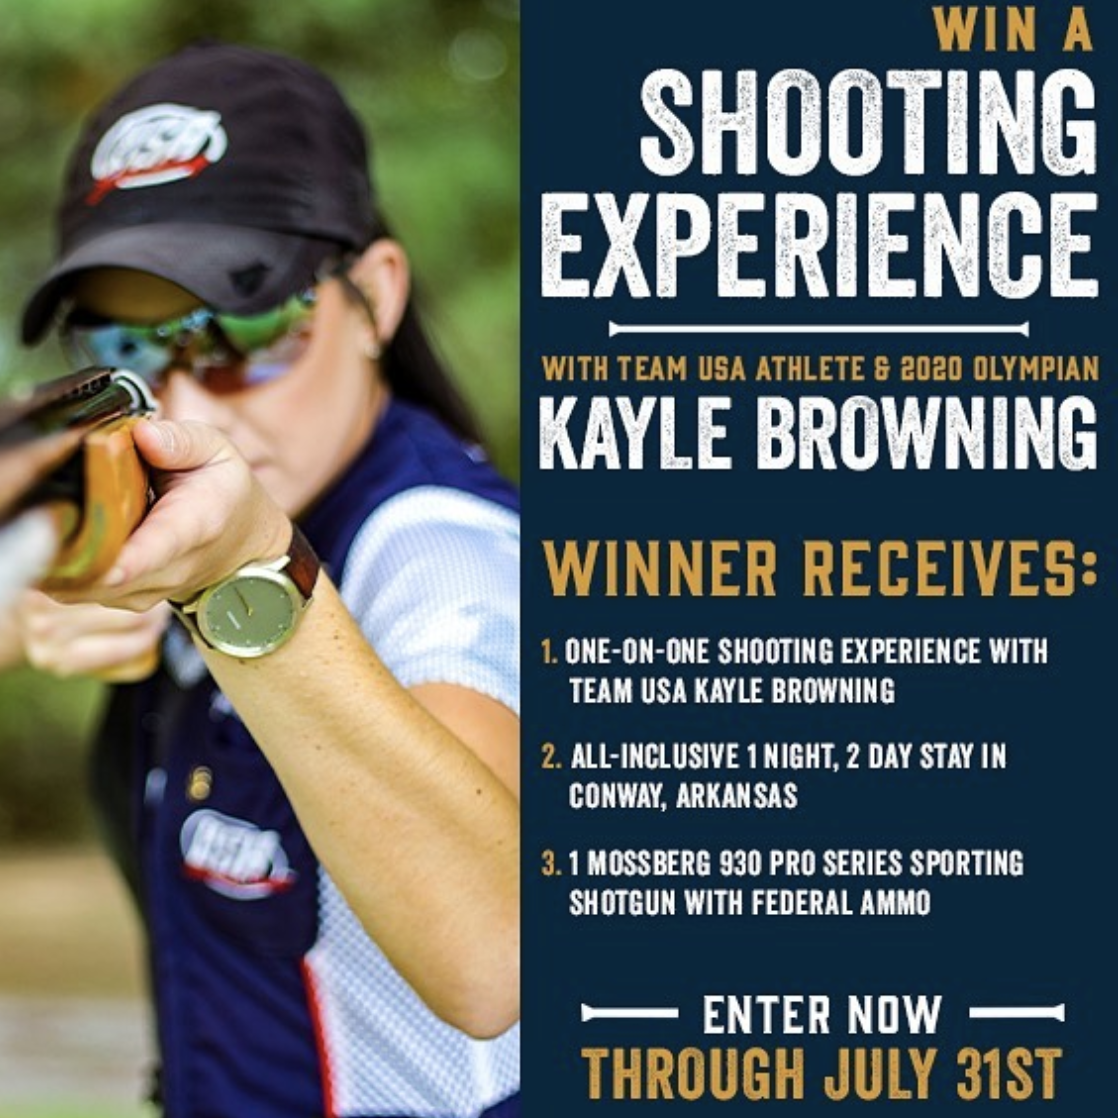 Don't miss your chance to win a one-on-one shooting experience with an Olympian. Head over to @usabrowningk's Instagram post for details. . . . . . #shotgunsports #clayshooting #sportingclays #trapshooting #skeetshooting #shootingcoach #olympicathlete #womenwhoshoot #entertowinpic.twitter.com/mEqHCD1kyx